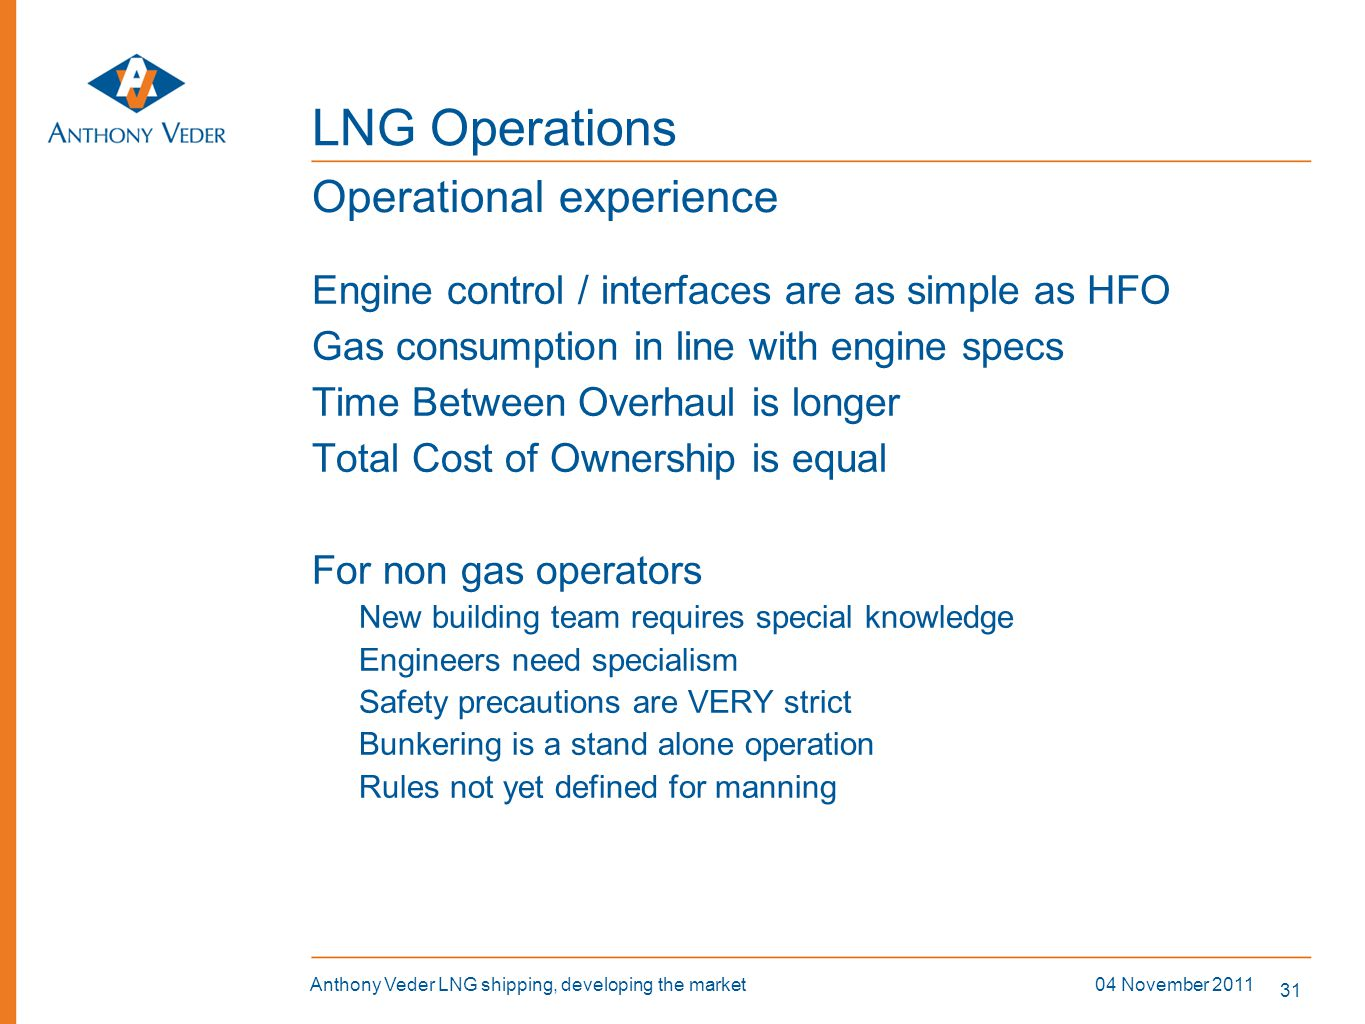 31 04 November 2011Anthony Veder LNG shipping, developing the market LNG Operations Engine control / interfaces are as simple as HFO Gas consumption i